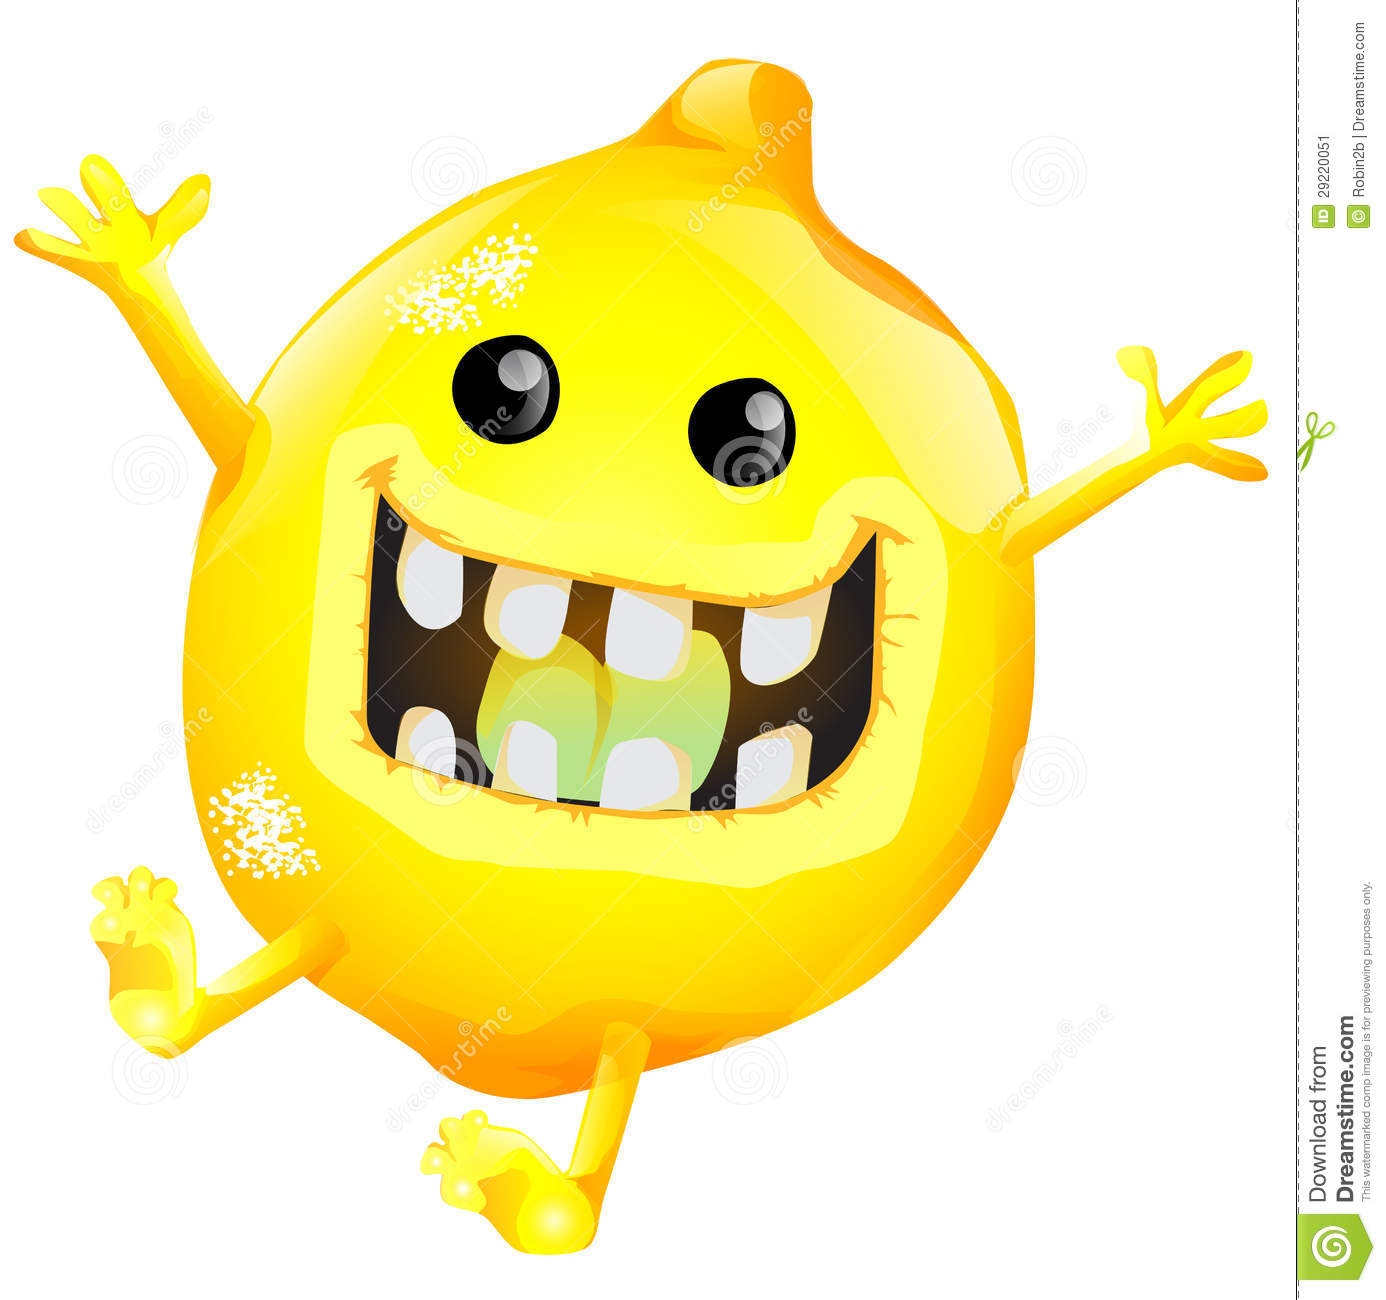 Cartoon Lemon Character Vector 774504 besides Stock Photography Cartoon Characters Dancing D Render Image31165632 furthermore Ulquiorra Orihime Photo together with Animation And Same Face Syndrome furthermore Stock Image Cartoon Lemon Image29220051. on lemon cartoon character